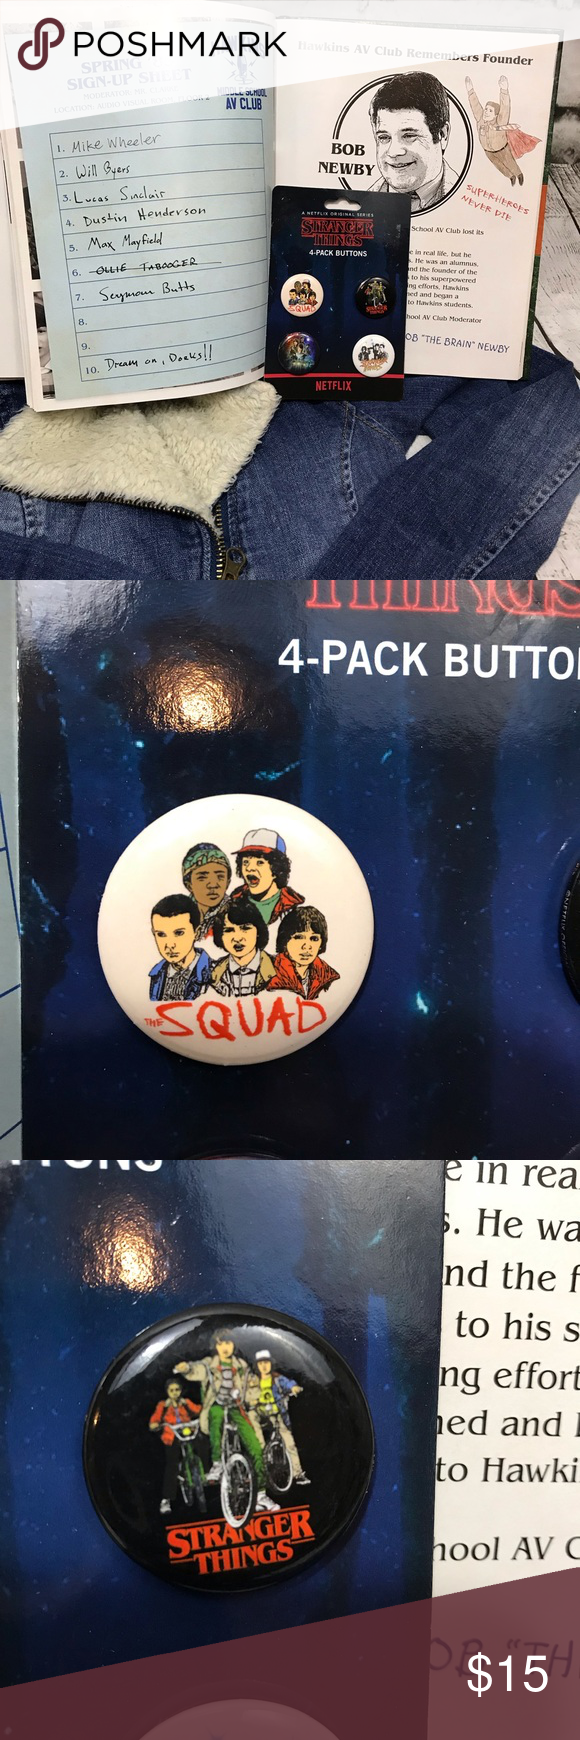 Stranger Things 4 Pack Buttons Raise Your Hand If You Can T Wait For Season 3 Set Of Four Buttons Acc Stranger Things Things To Sell Raise Your Hand